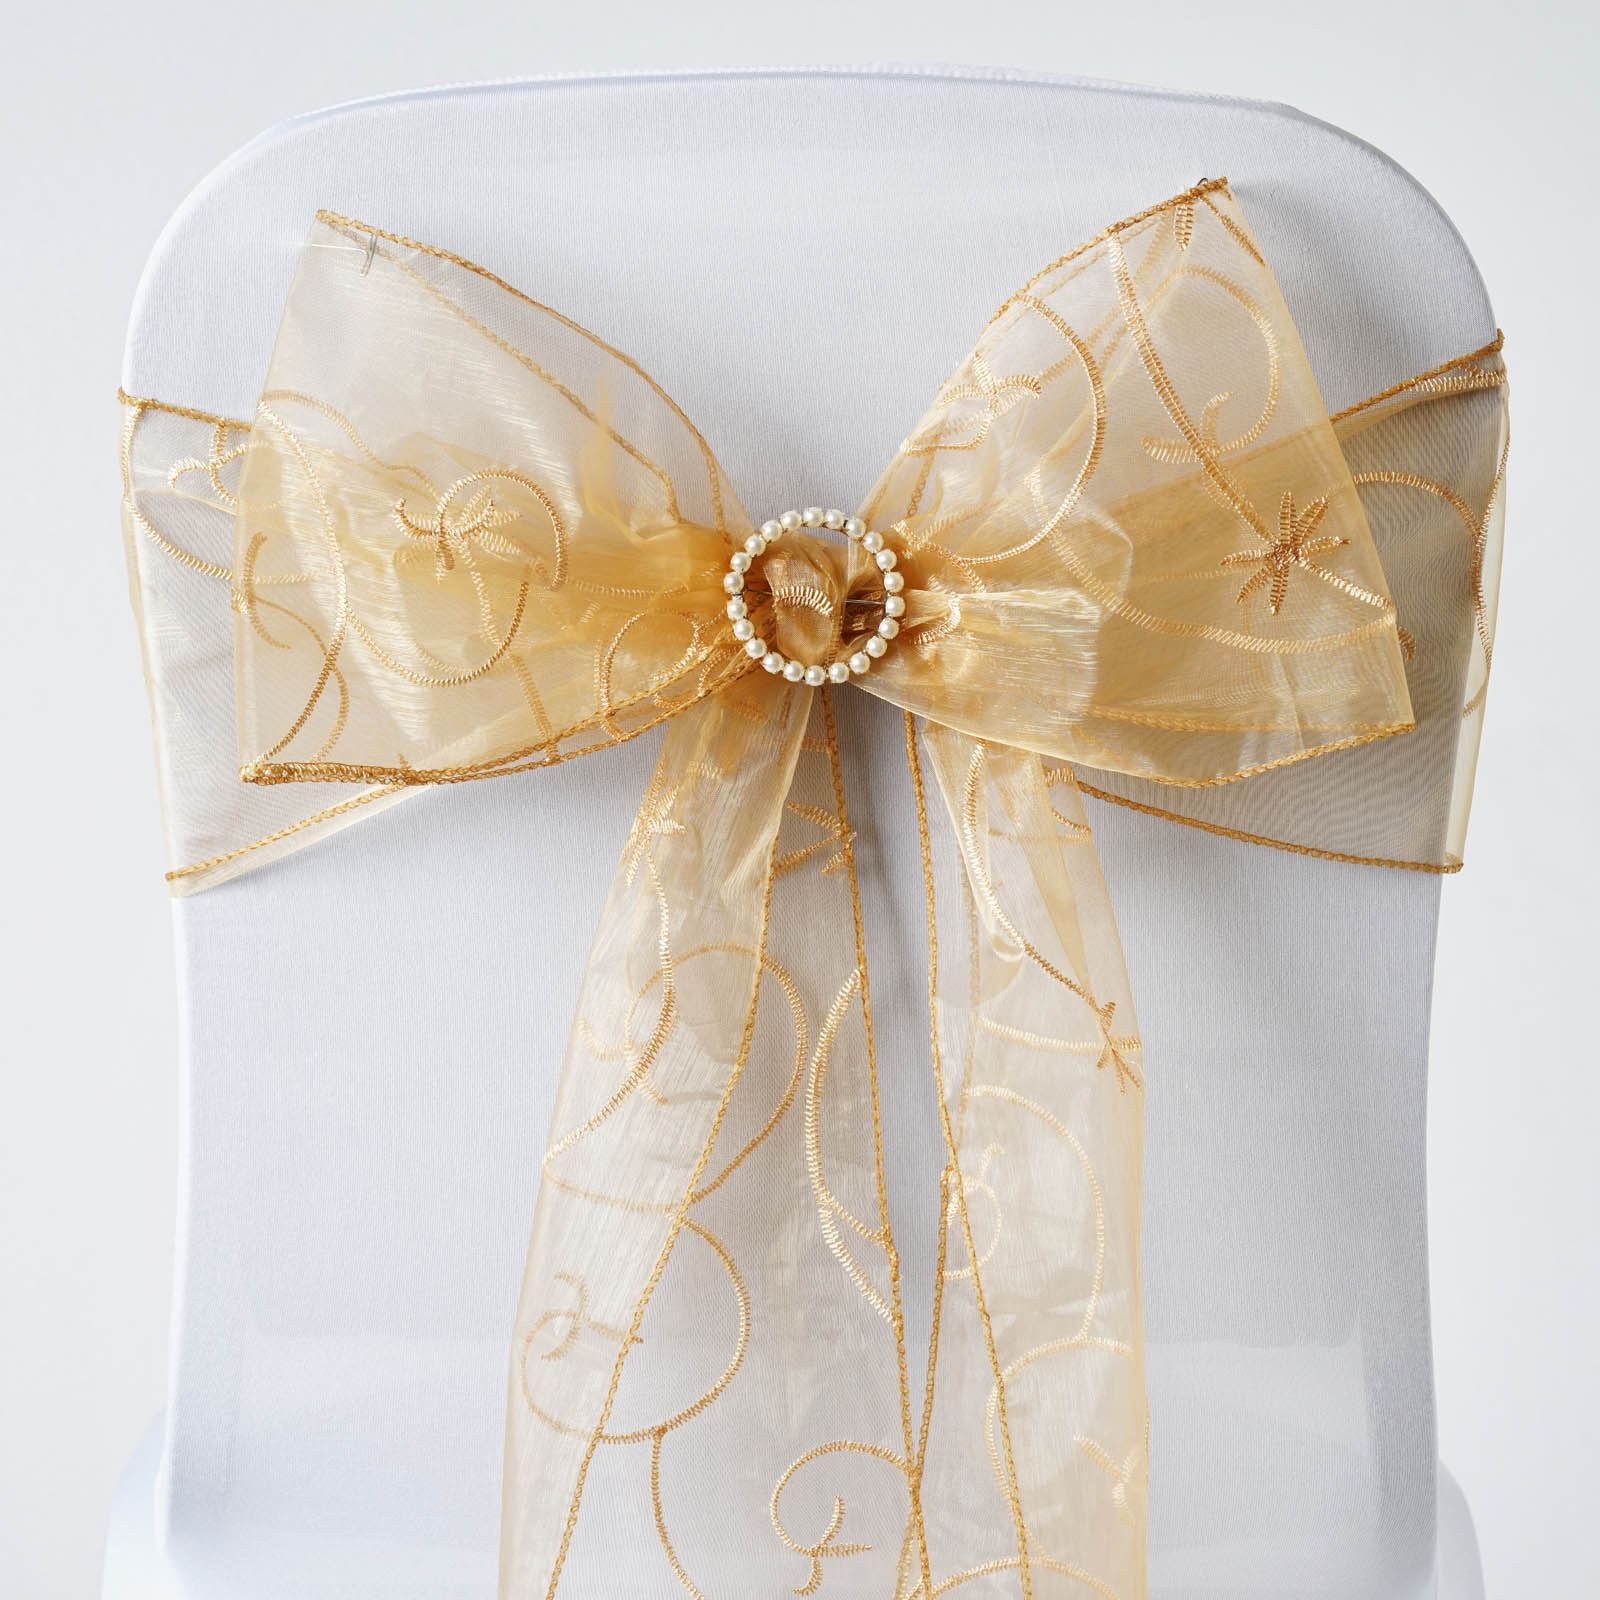 organza wedding chair sashes bentwood bistro chairs 200 x wholesale embroidered ties bows